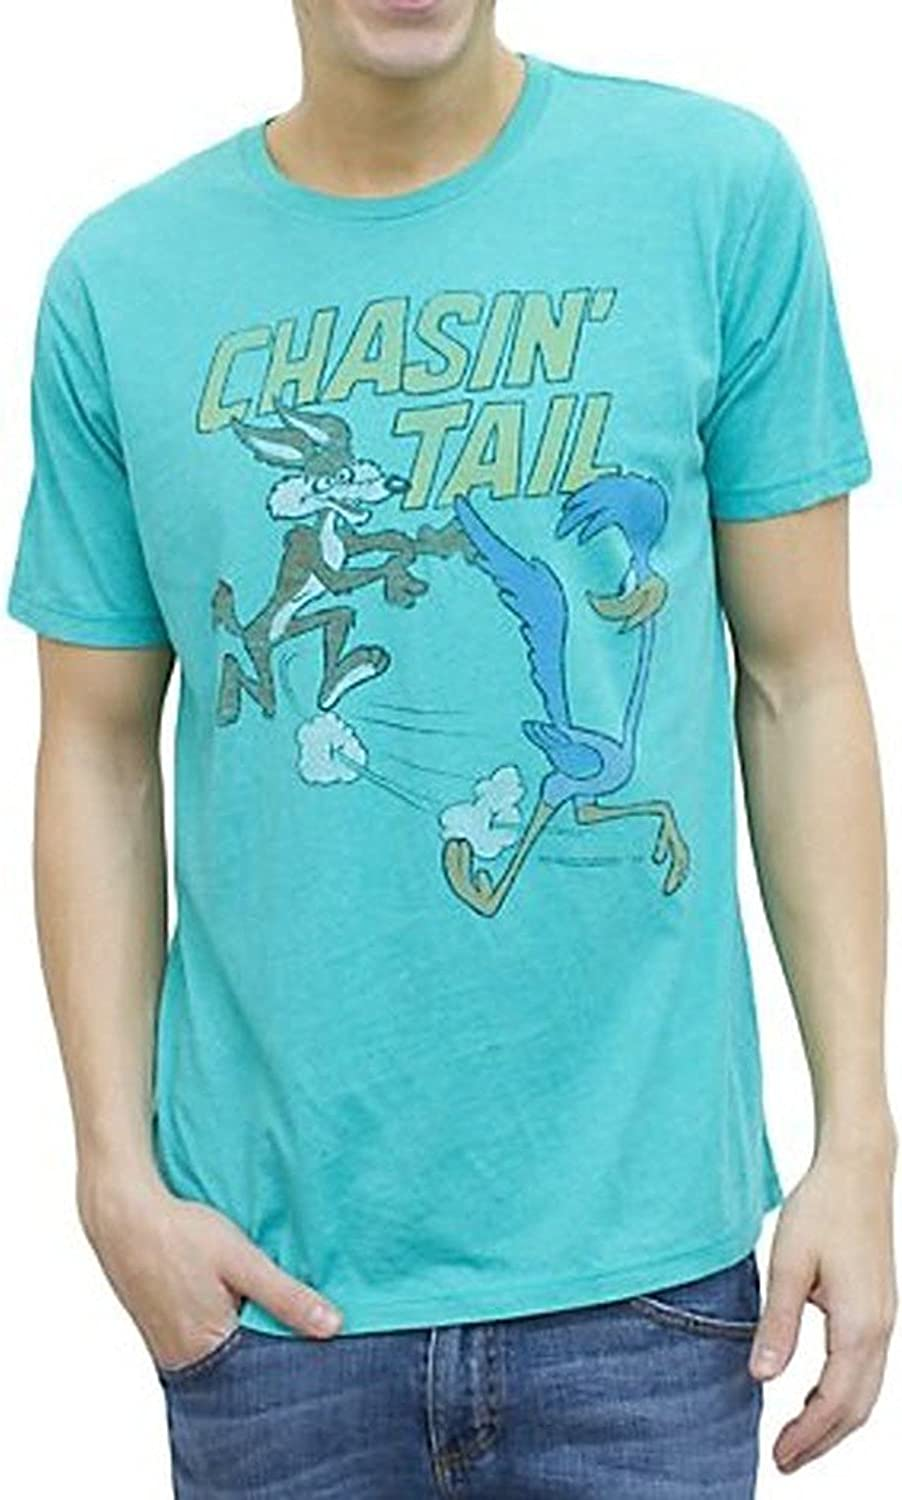 Junk Food Looney Tunes Vintage Inspired Chasin' Tail Adult Lagoon Blue T-shirt (Adult Large)